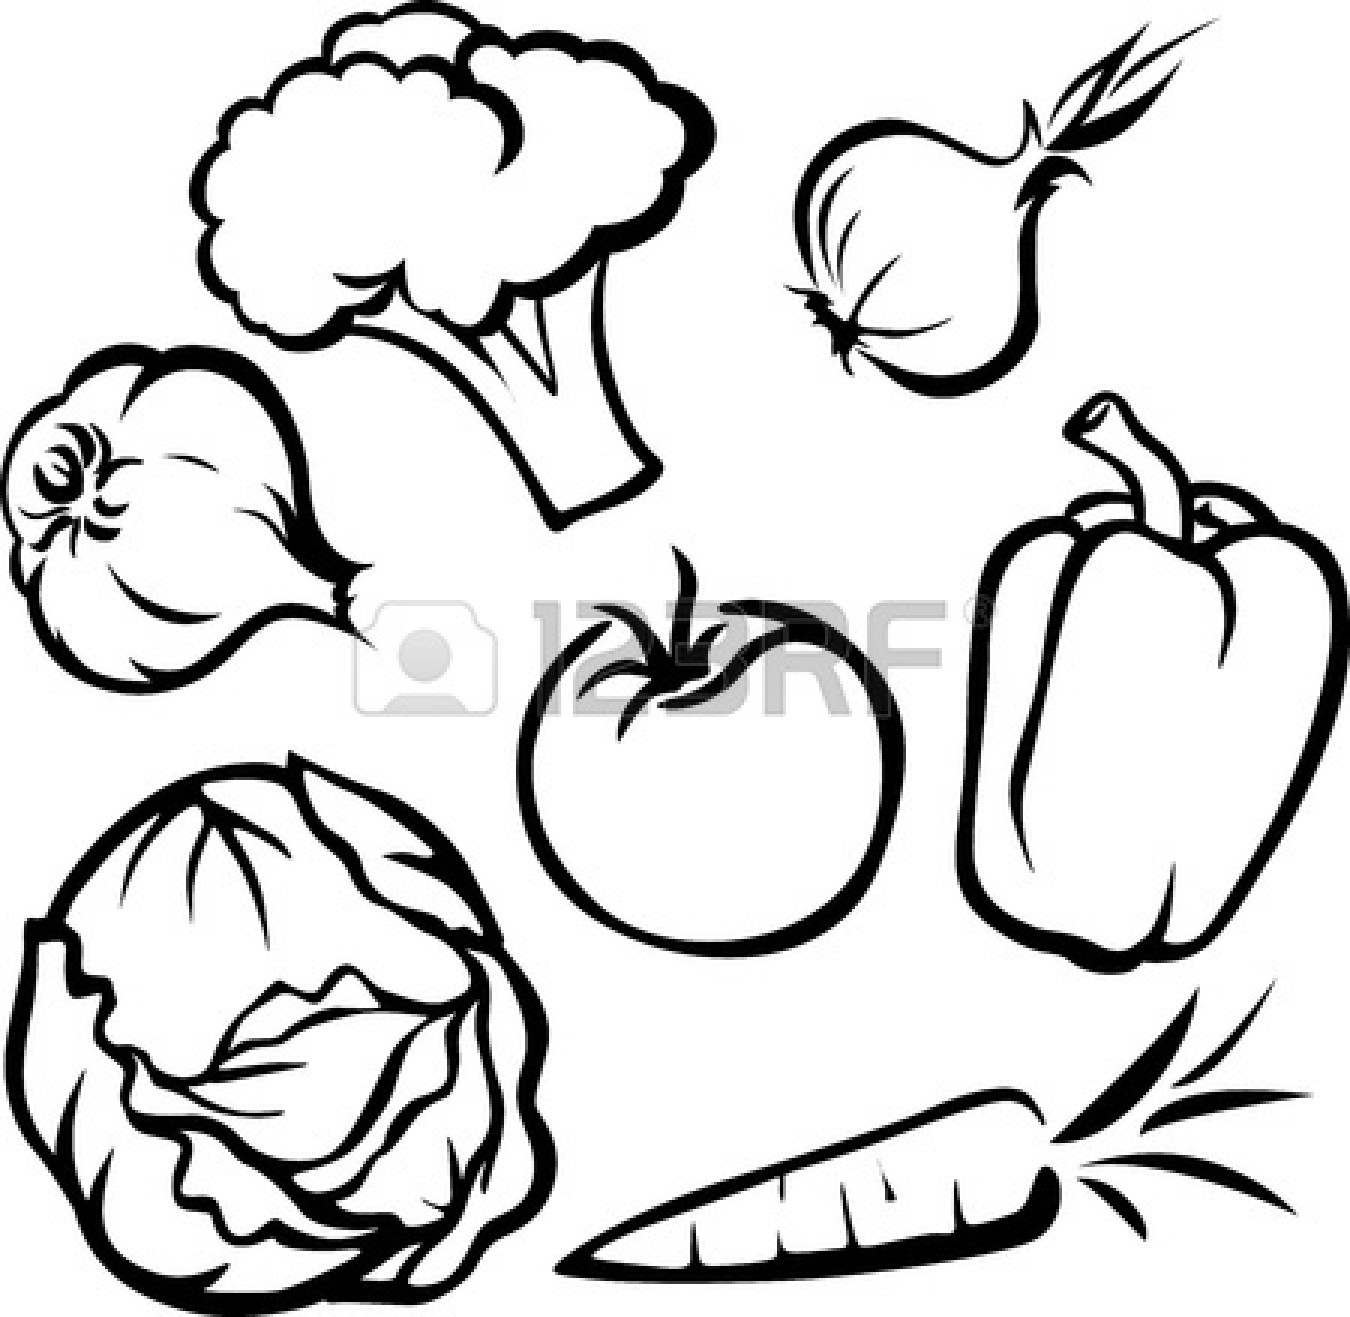 1350x1317 Vegetable Clip Art Fruits Vegetables Id 40006 Clipart Pictures